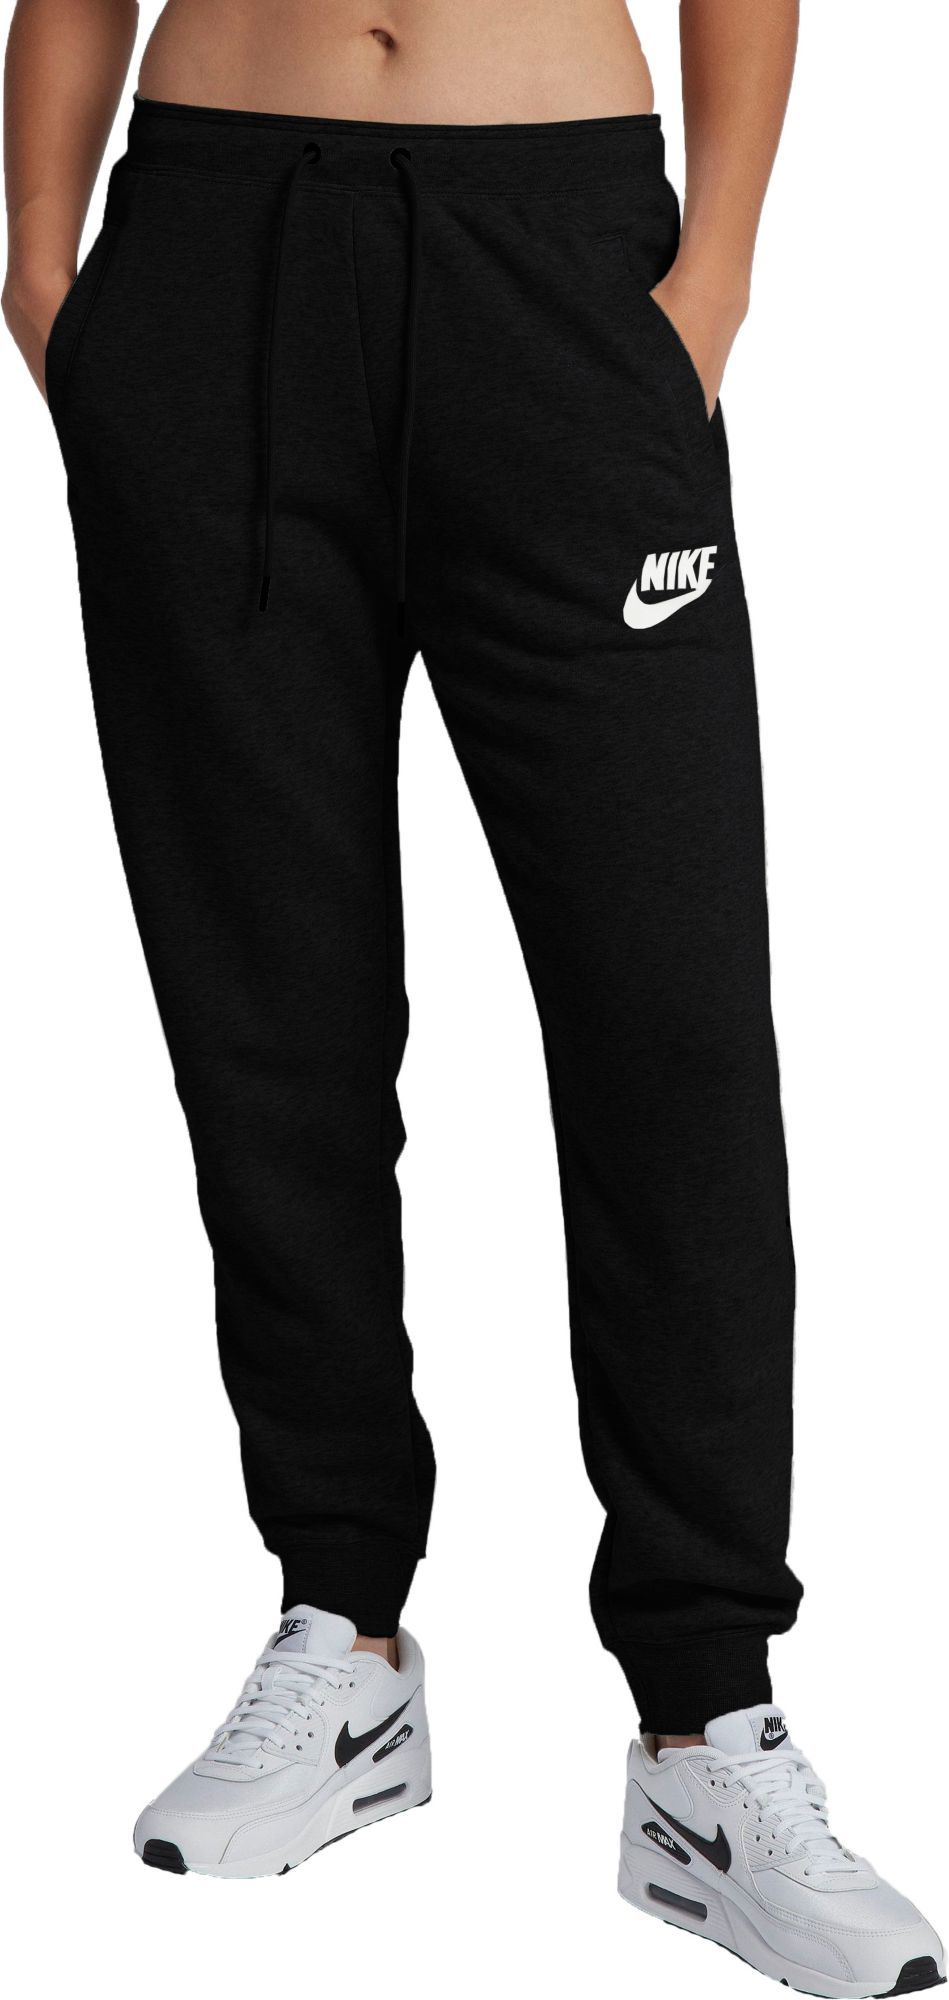 5f47acc4 Nike Women's Sportswear Rally Sweatpants in 2019 | Products | Nike ...